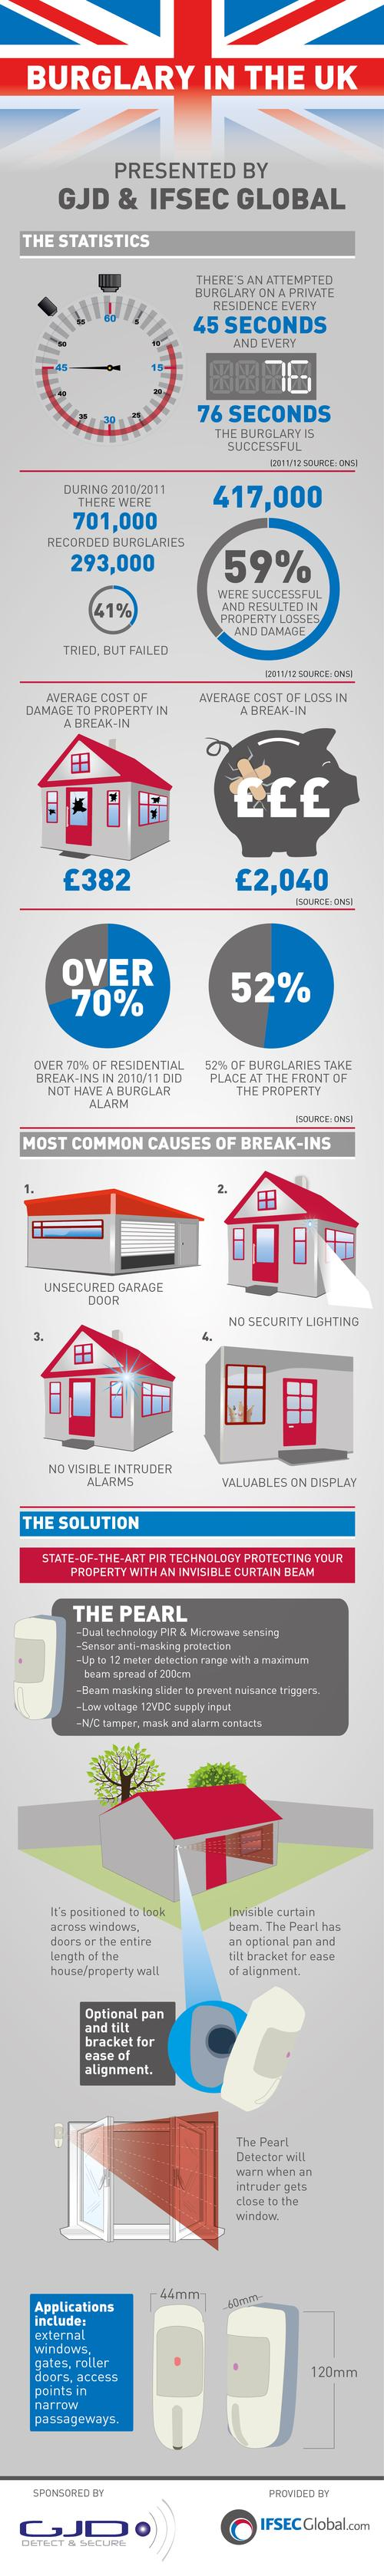 Burglary in the UK: An infographic presented by GJD and IFSEC Global